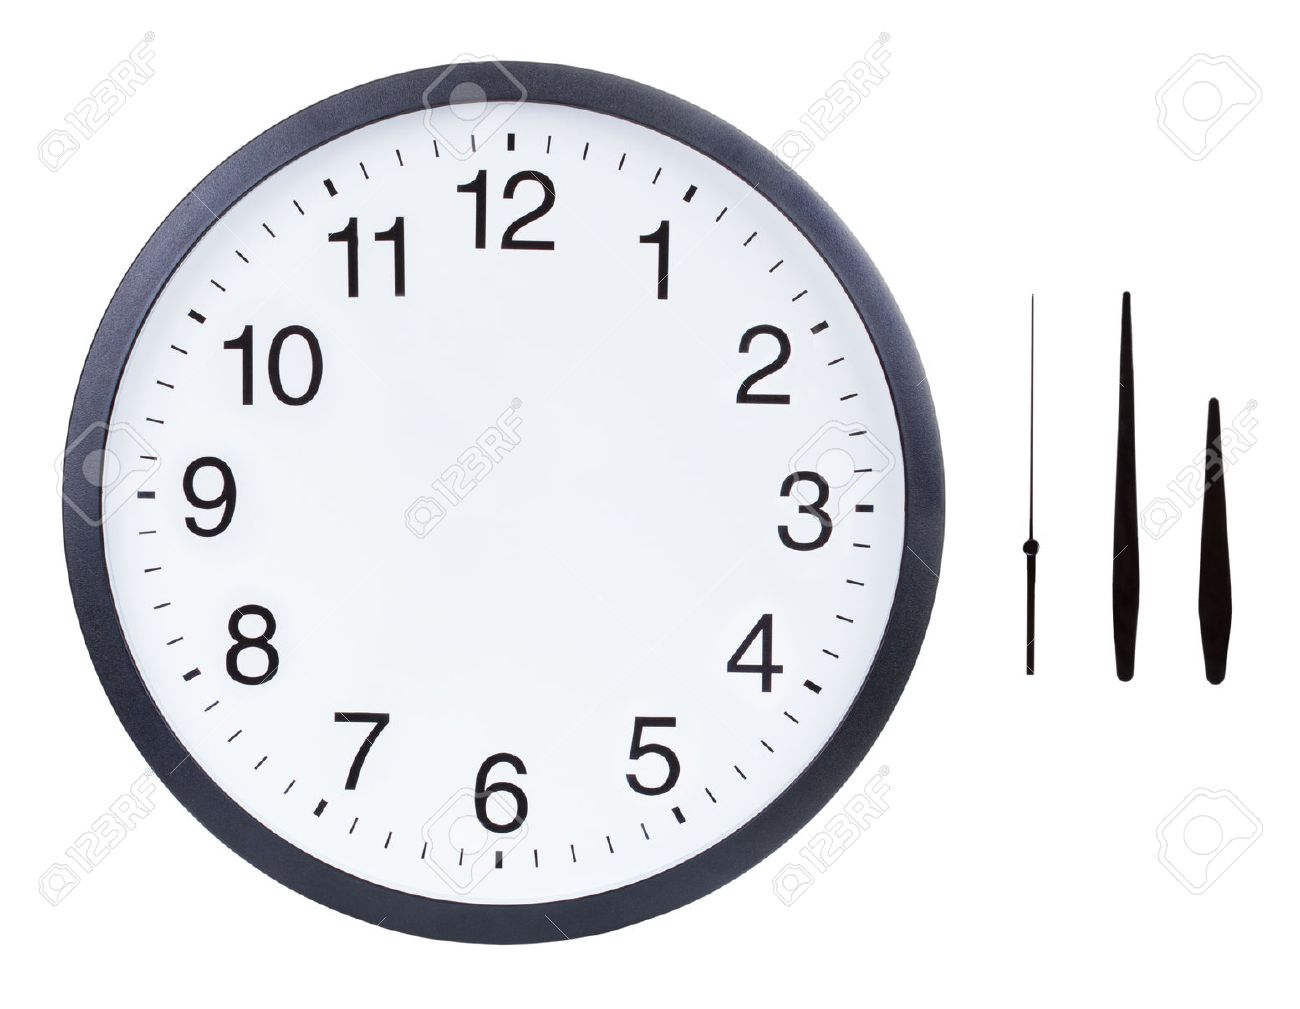 picture relating to Printable Clock Face With Hands named Blank clock deal with with hour, instant and moment arms isolated..